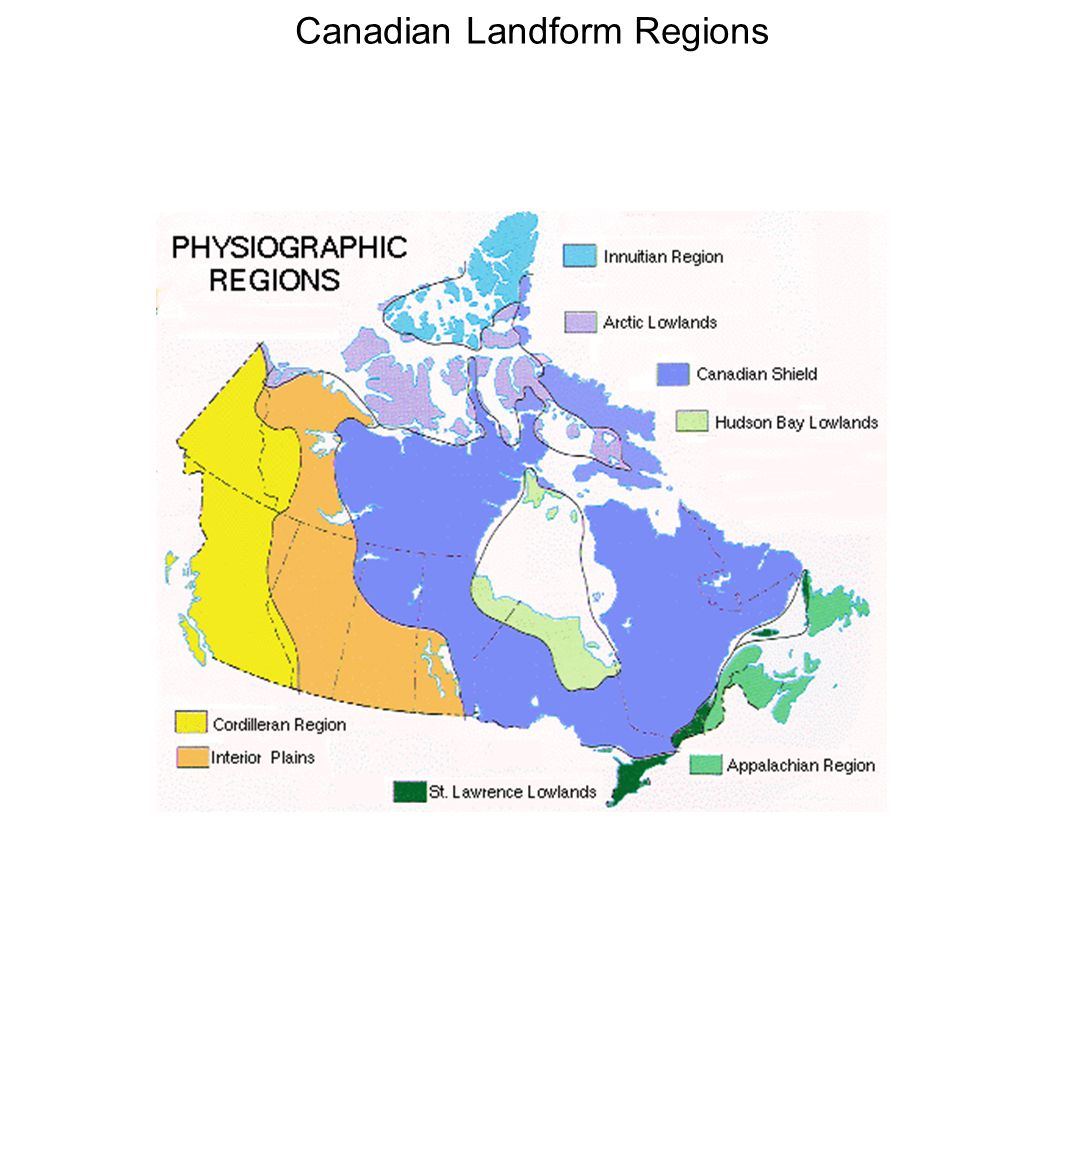 Canadian Landform Regions